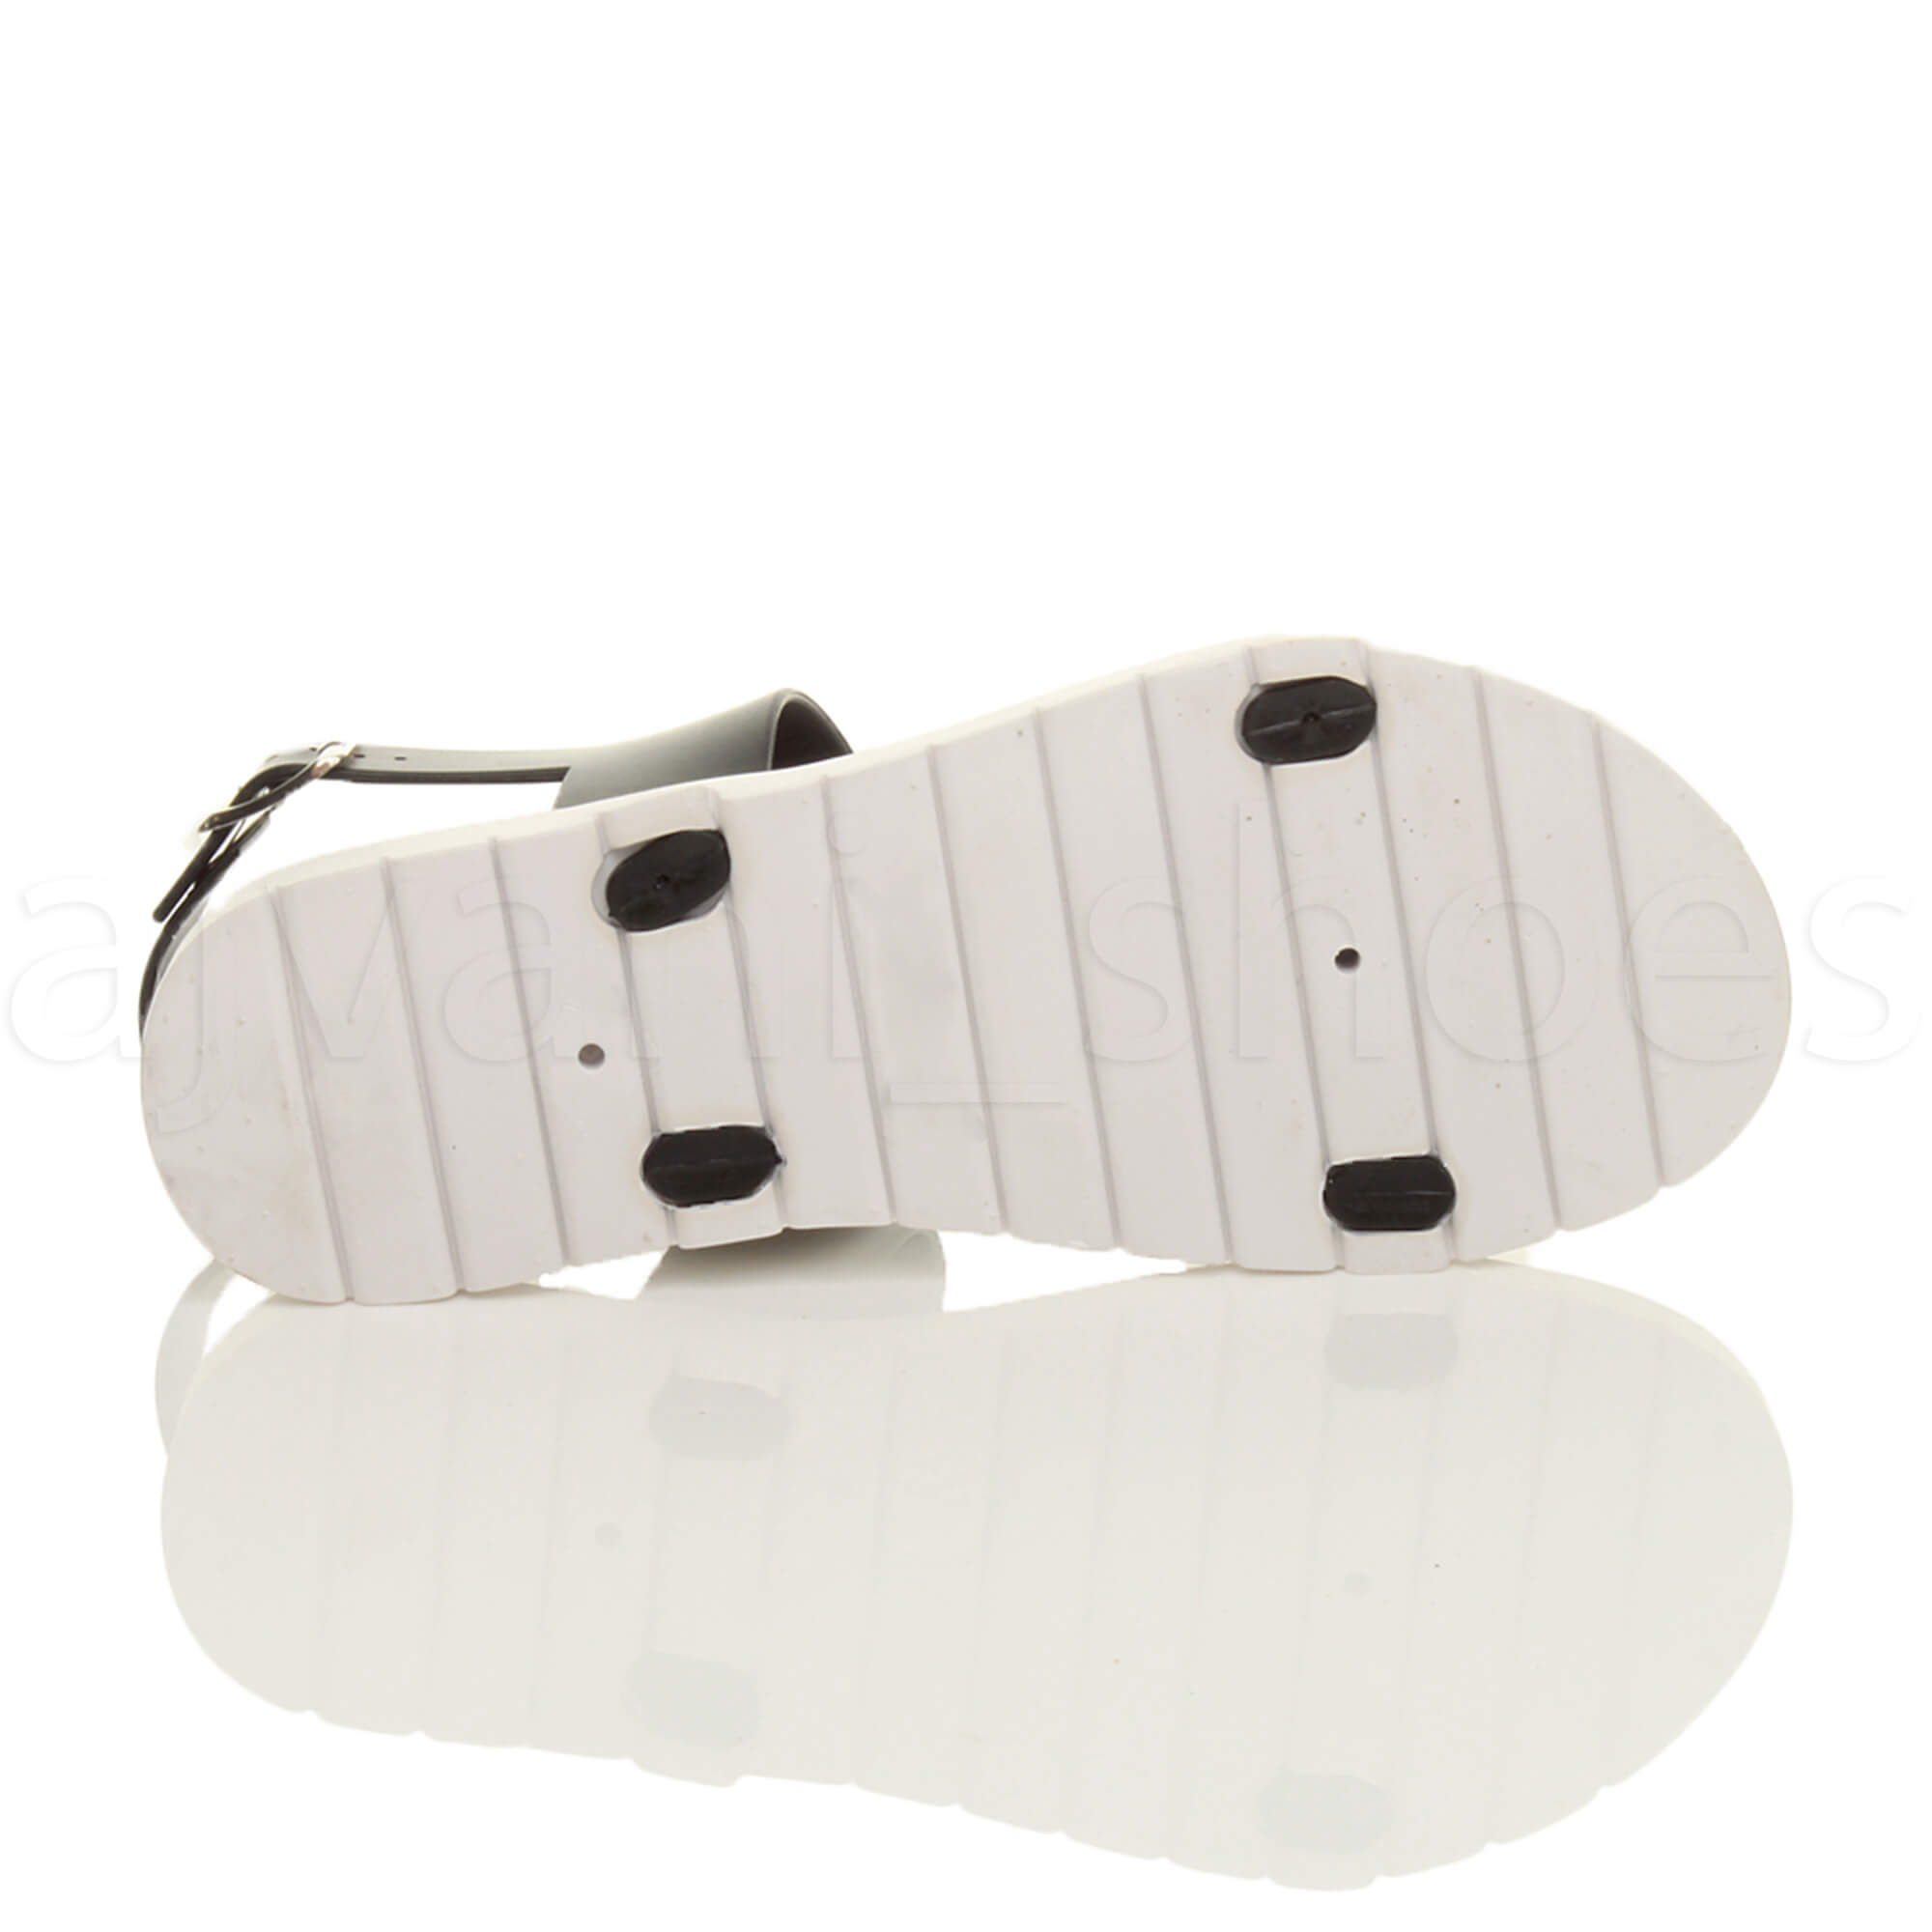 WOMENS-LADIES-FLAT-STRAPPY-BUCKLE-SLINGBACK-CLEATED-RUBBER-SUMMER-SANDALS-SIZE thumbnail 8